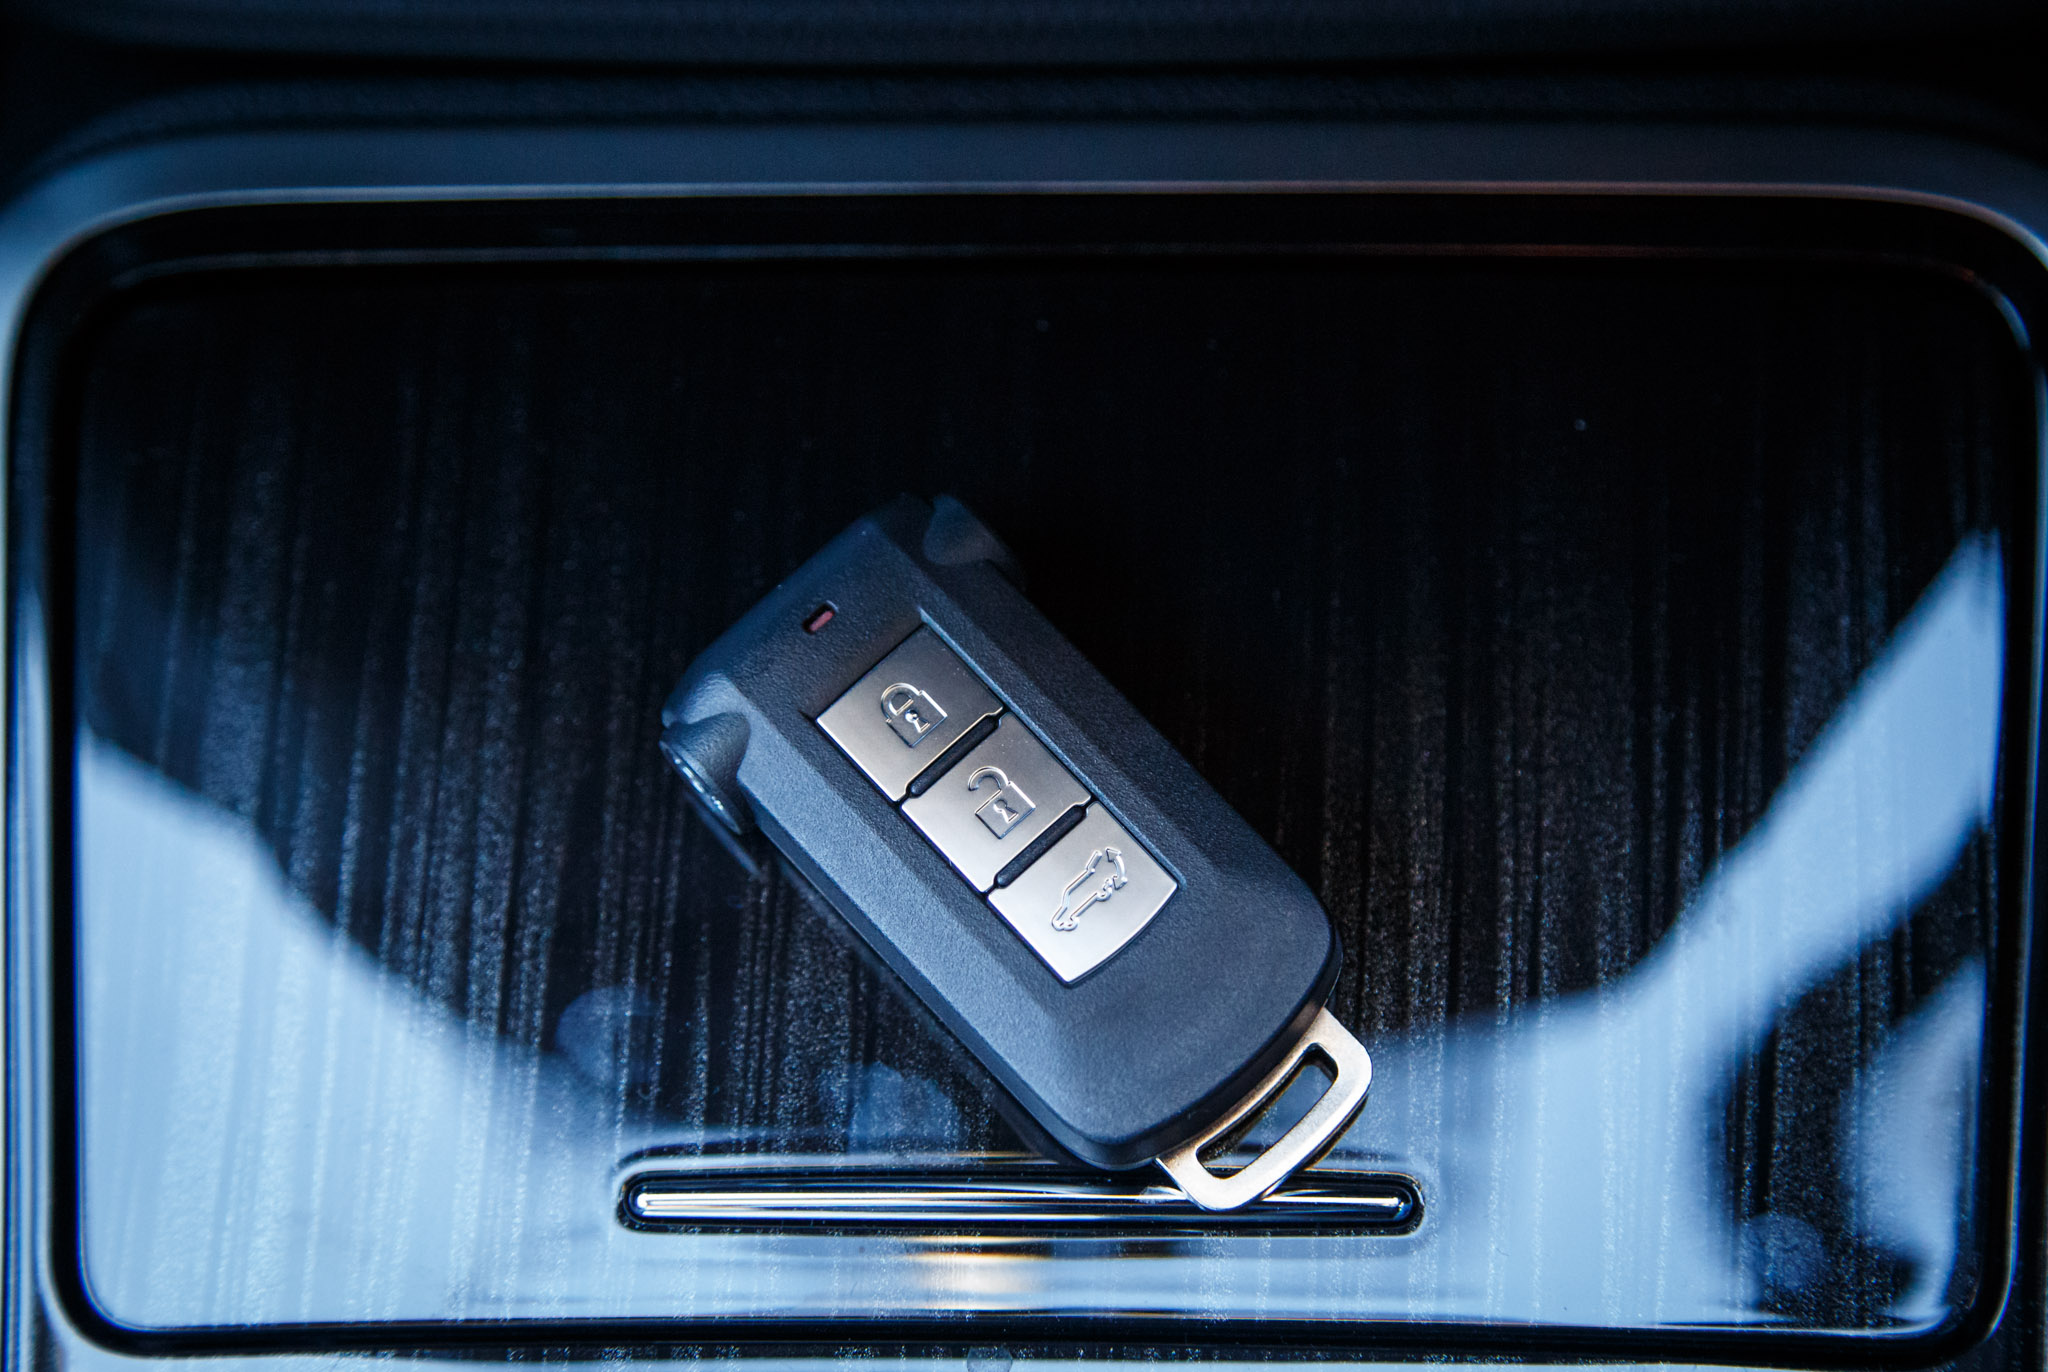 Keys Stuck In Ignition >> Locked Out Or Your Car Key Doesn't Work Anymore?